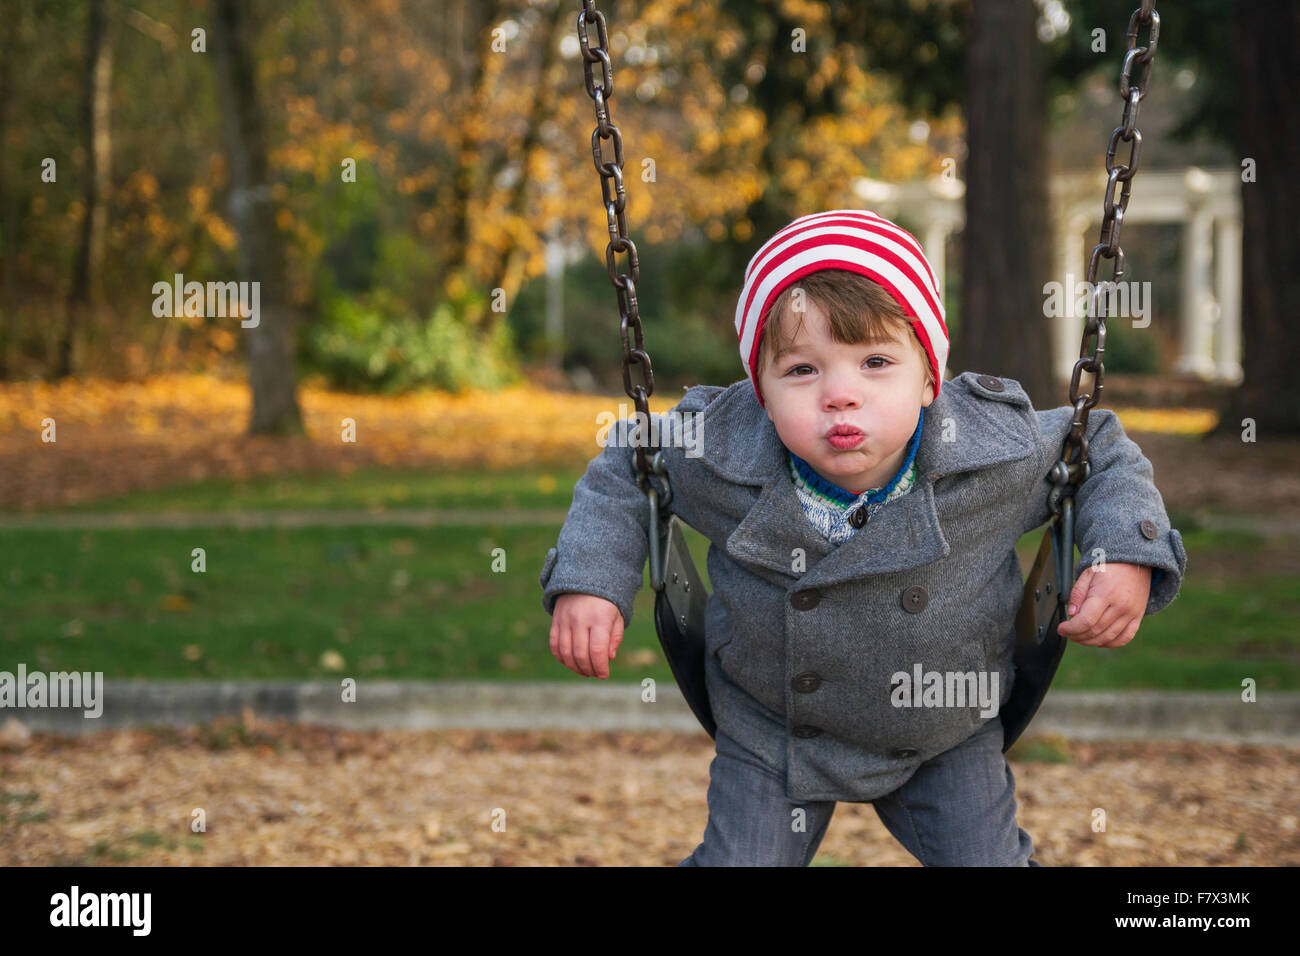 Boy on a swing puckering lips - Stock Image